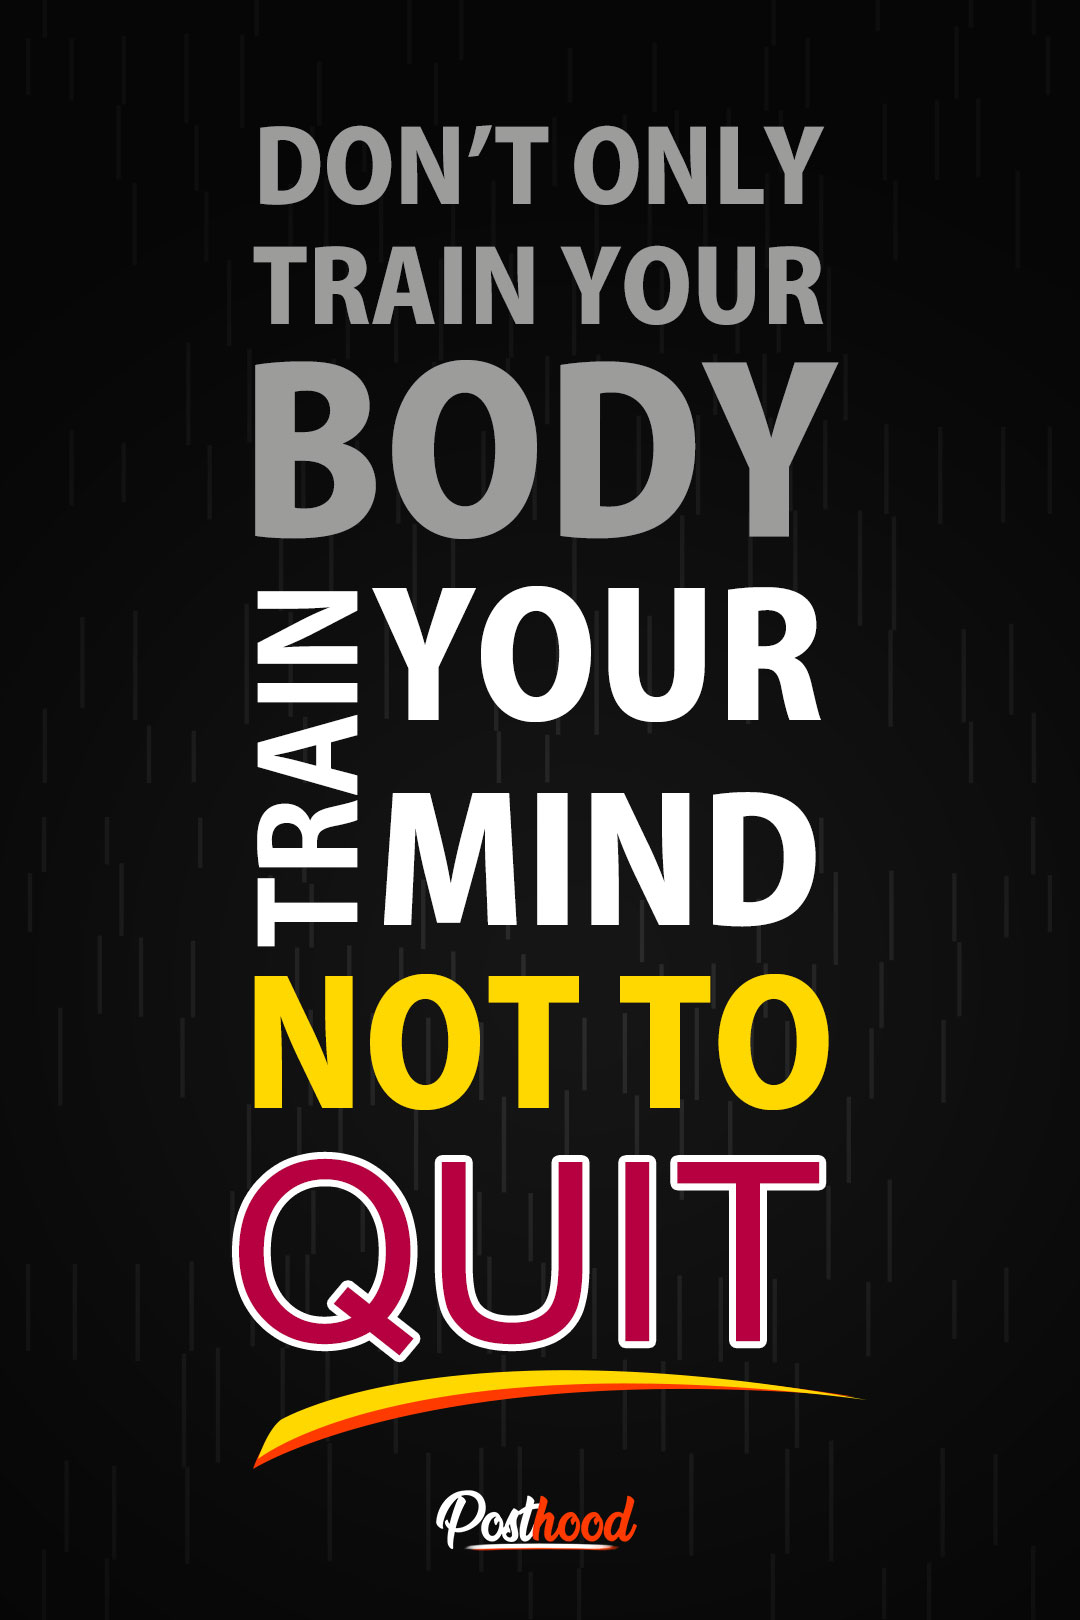 100 Fitness Motivational Quotes Inspire You To Keep Going Posthood